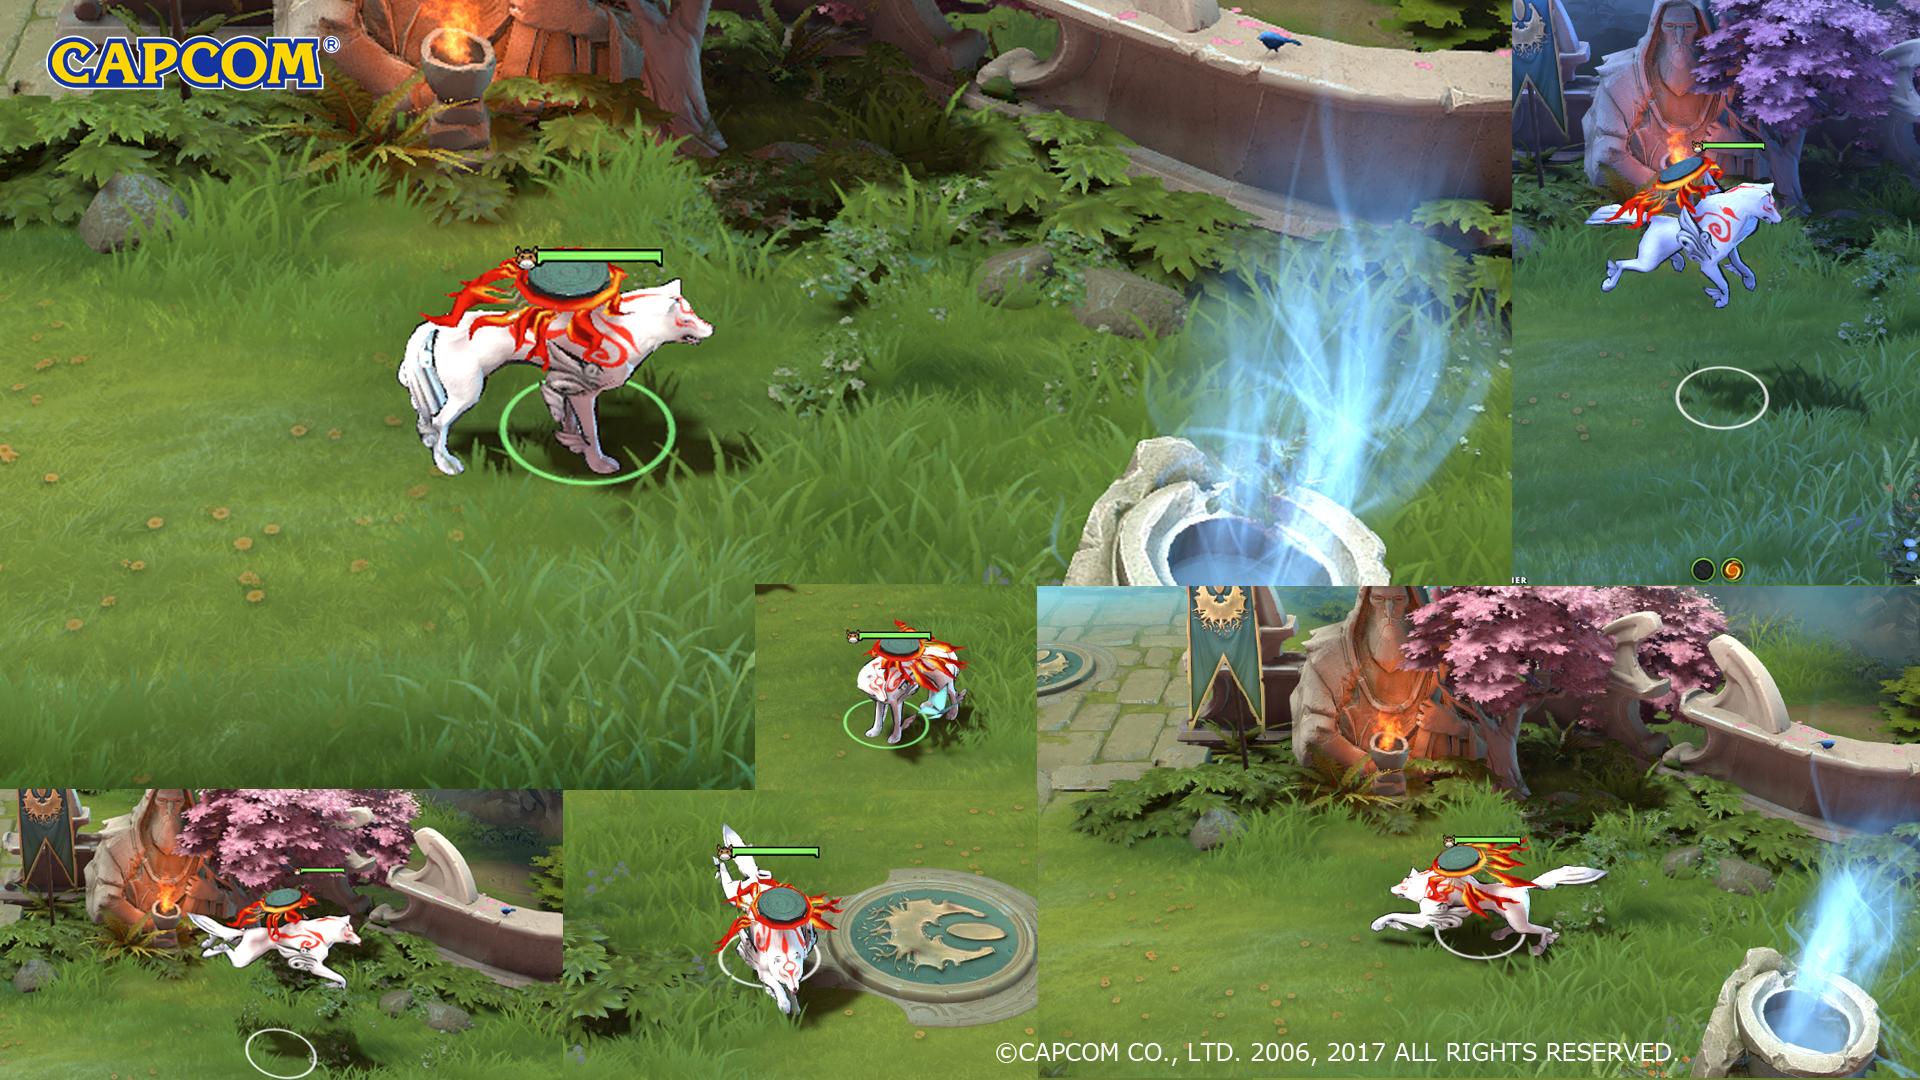 capcom submits amaterasu courier in the dota 2 workshop